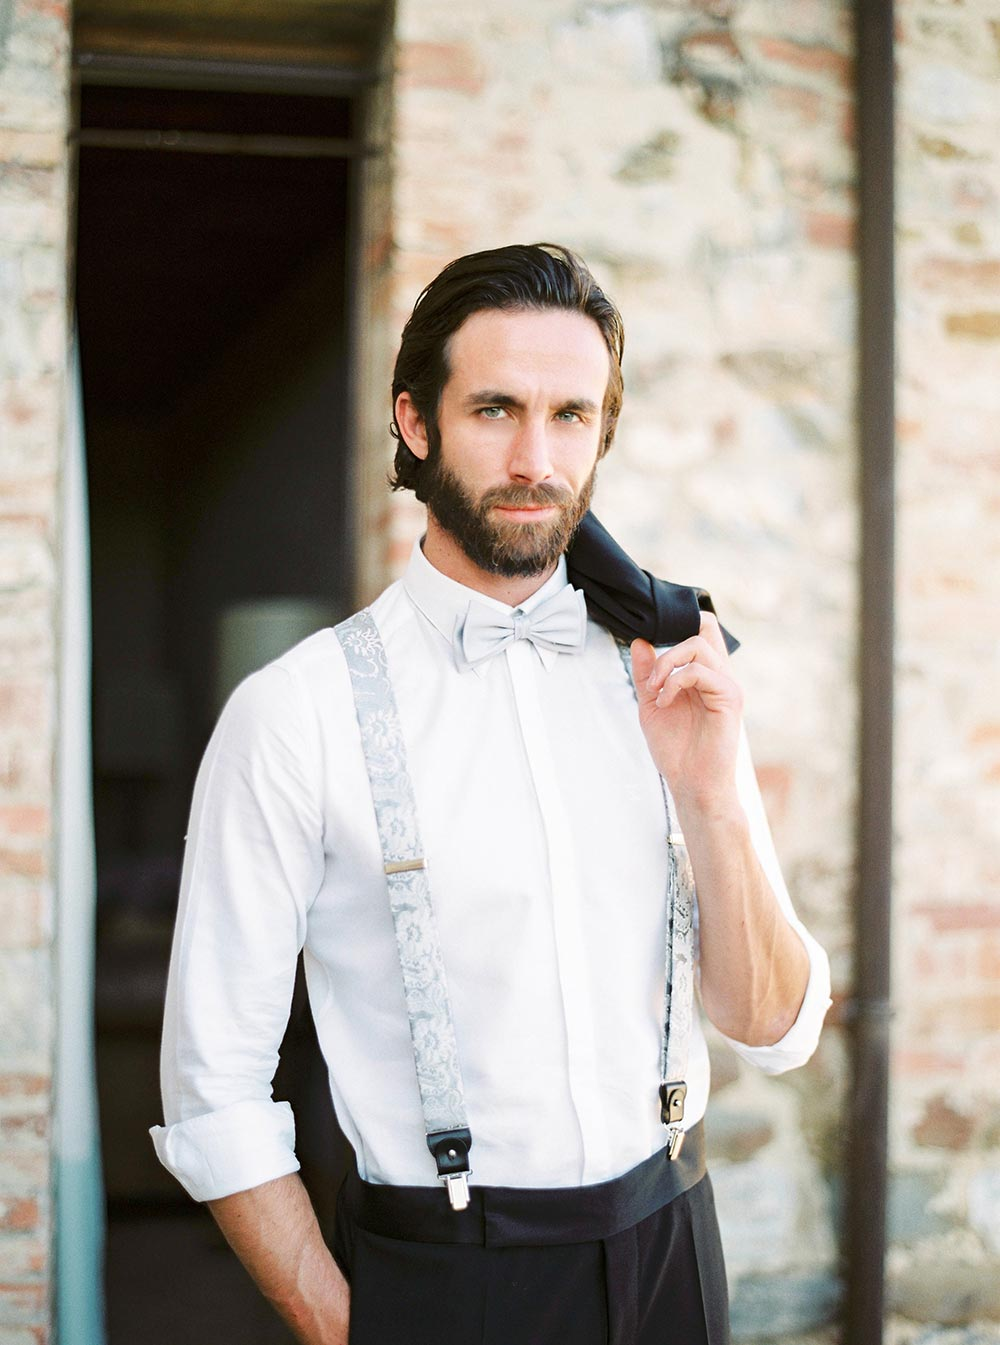 blue suspender groom attire